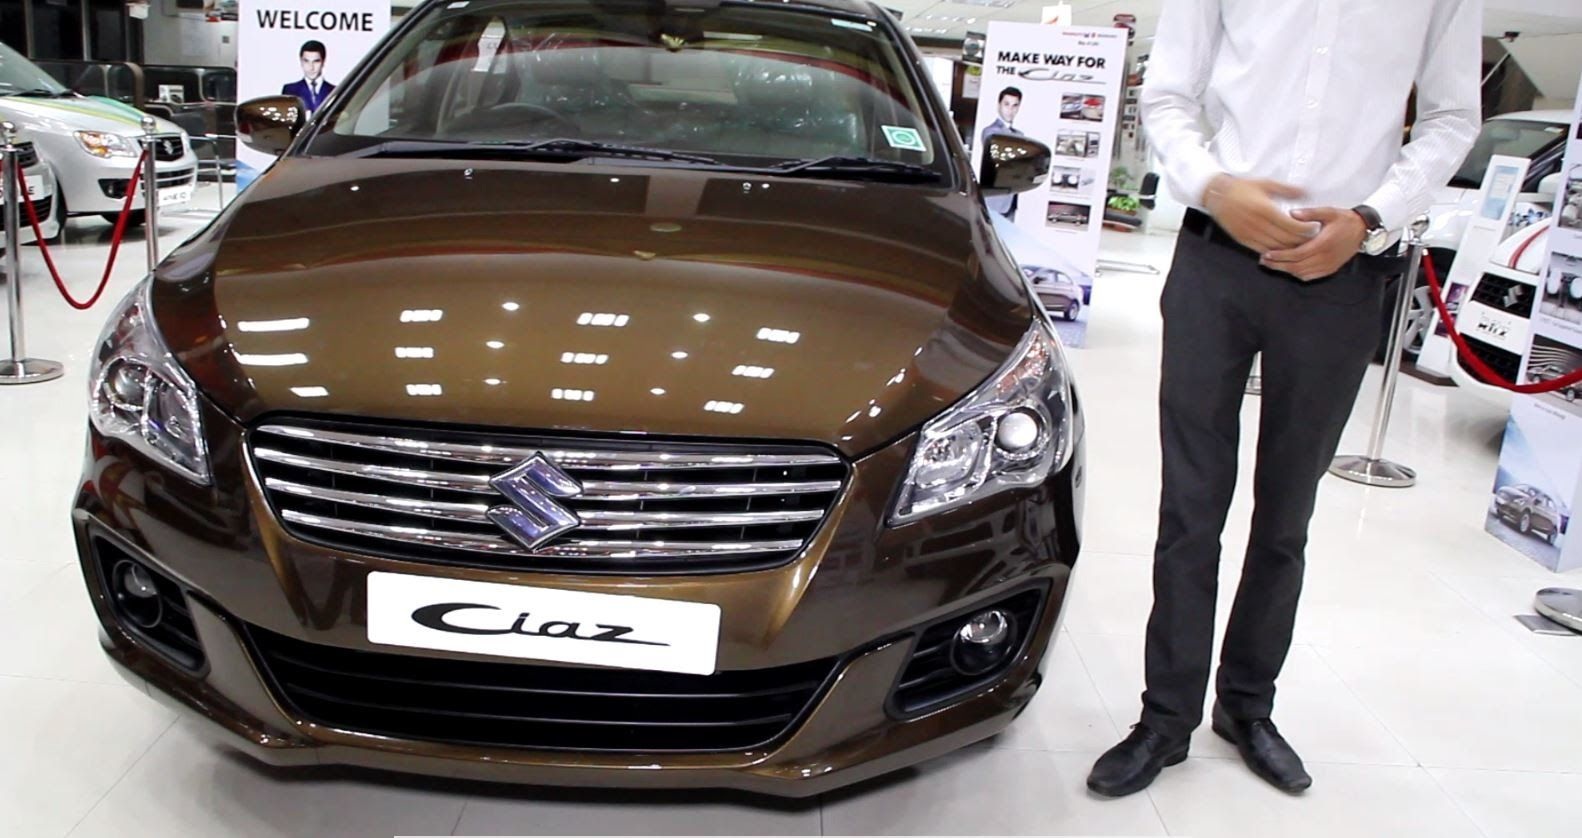 Watch and compare the maruti ciaz with honda city 2014 version click here for maruti